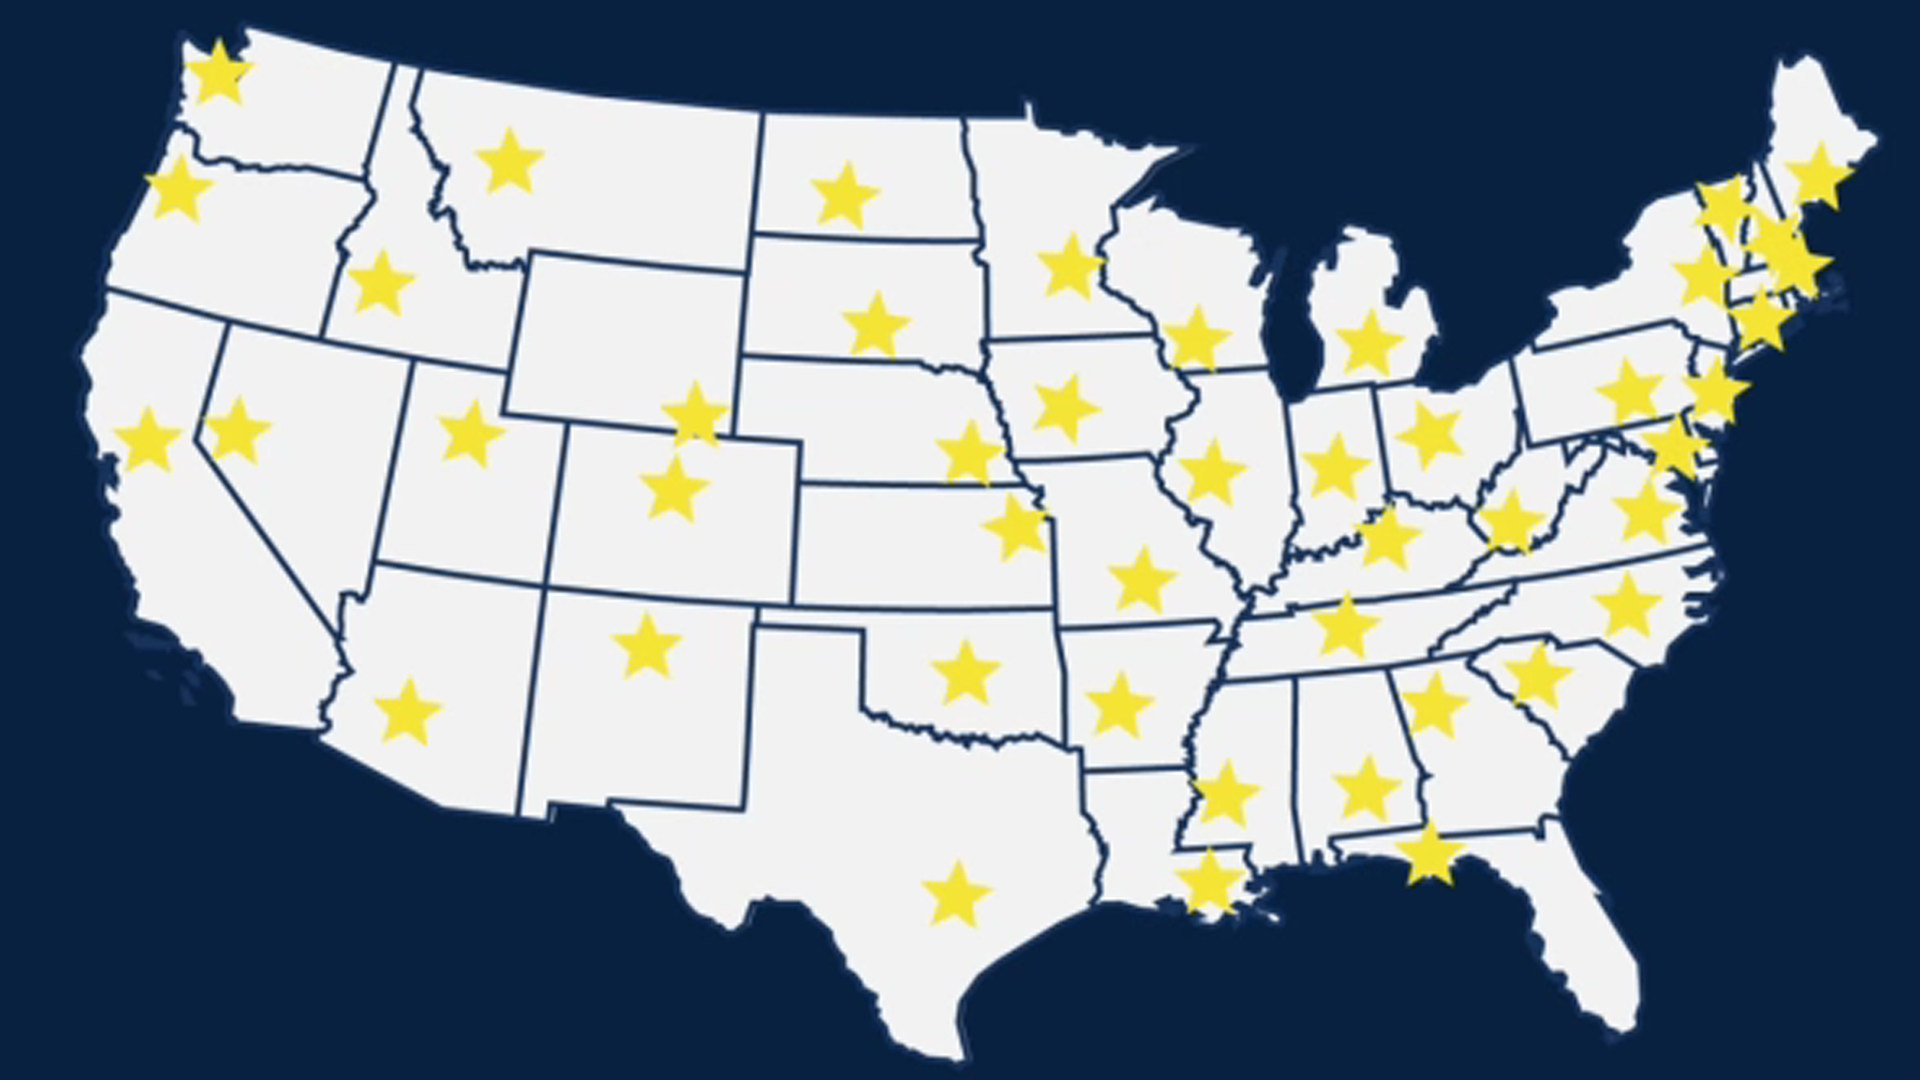 States And Capitals In Abc Order on